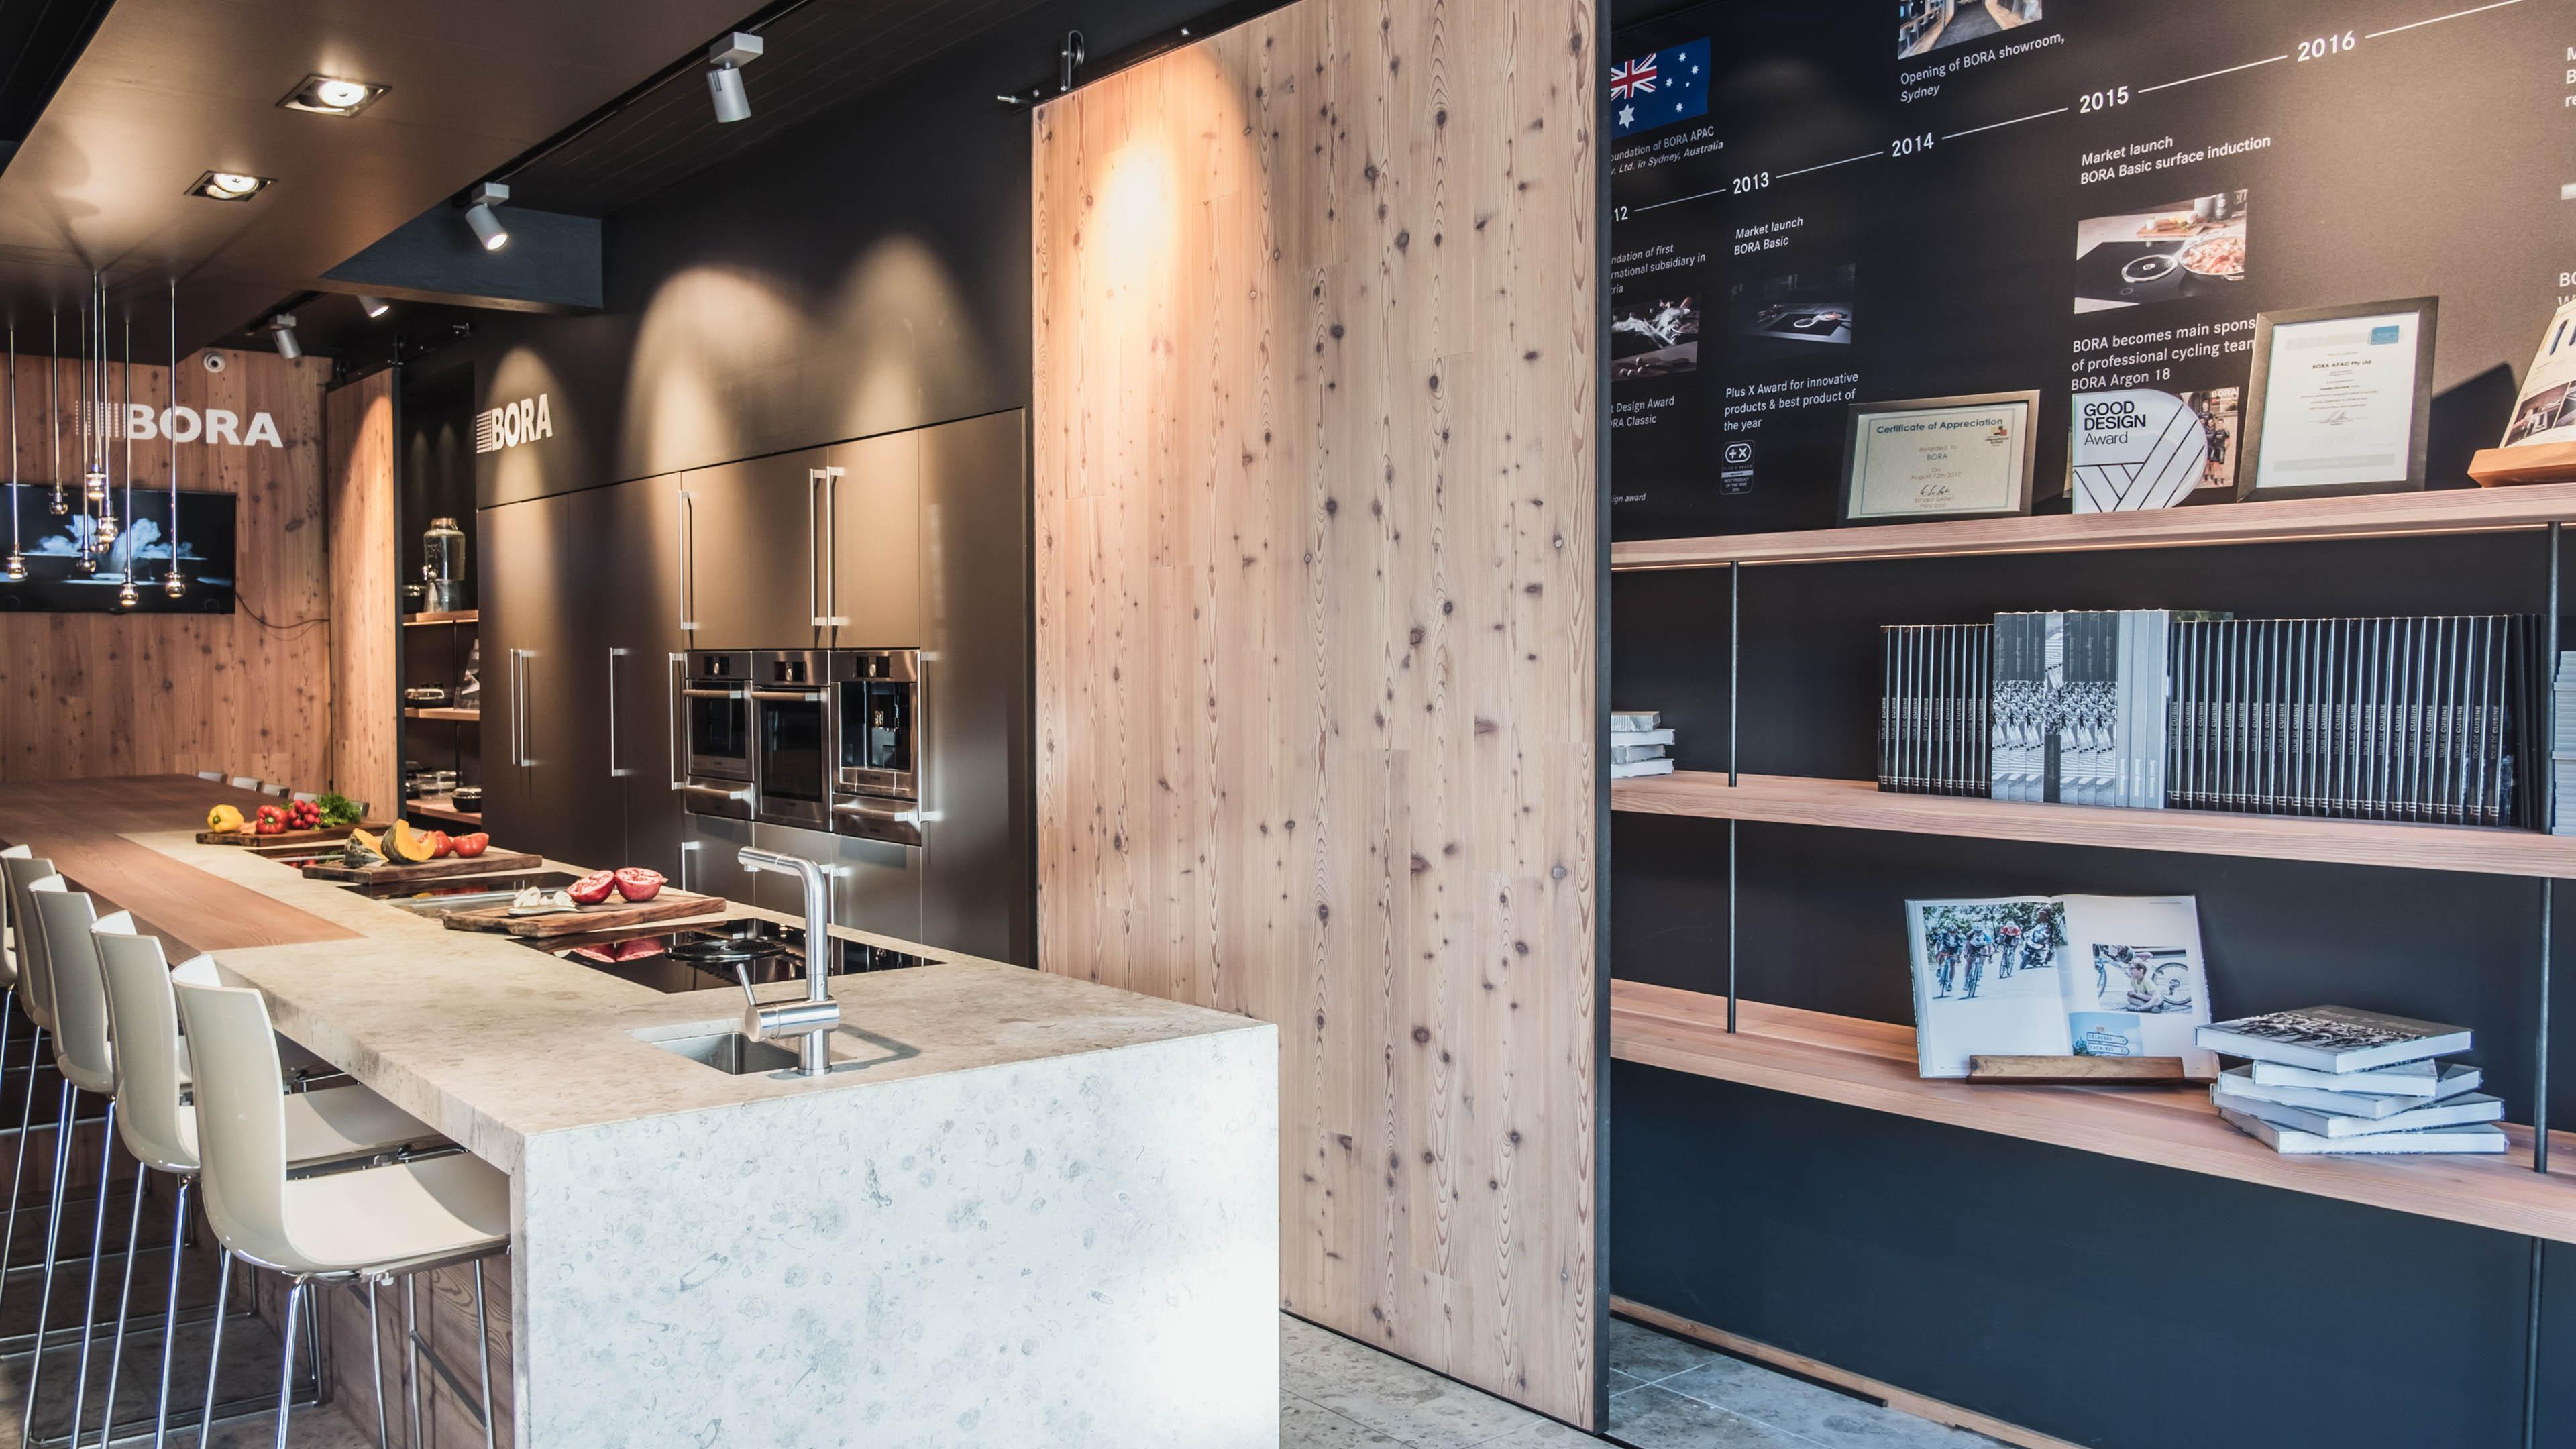 Kitchens Drummoyne Bora Showroom In Sydney Meet The Cooking Revolution